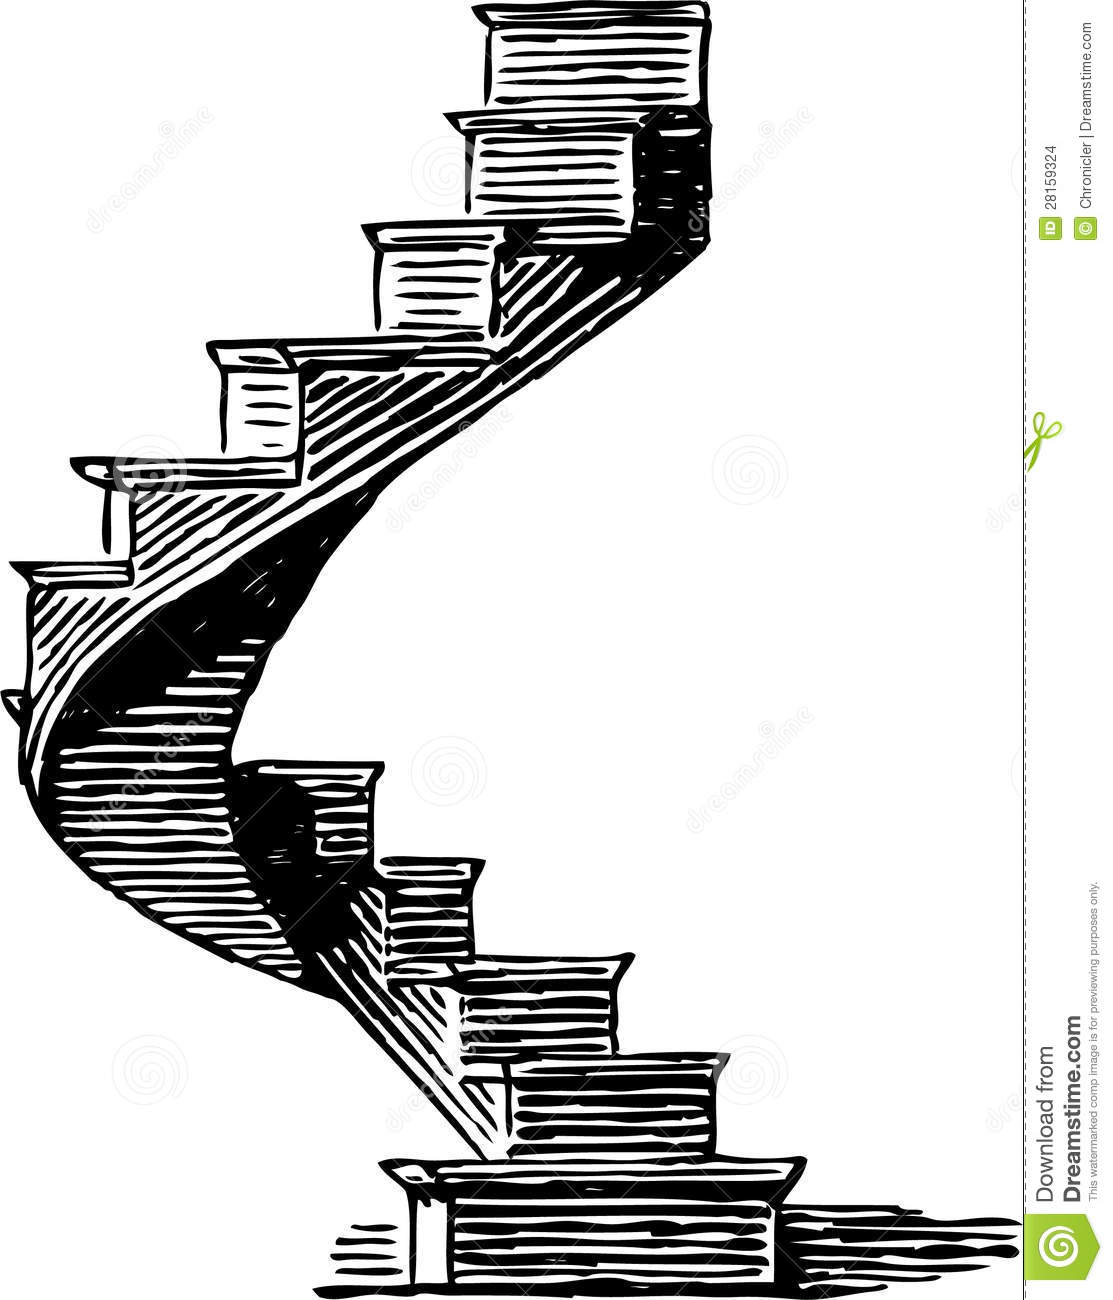 Staircase clipart. Stairway panda free images